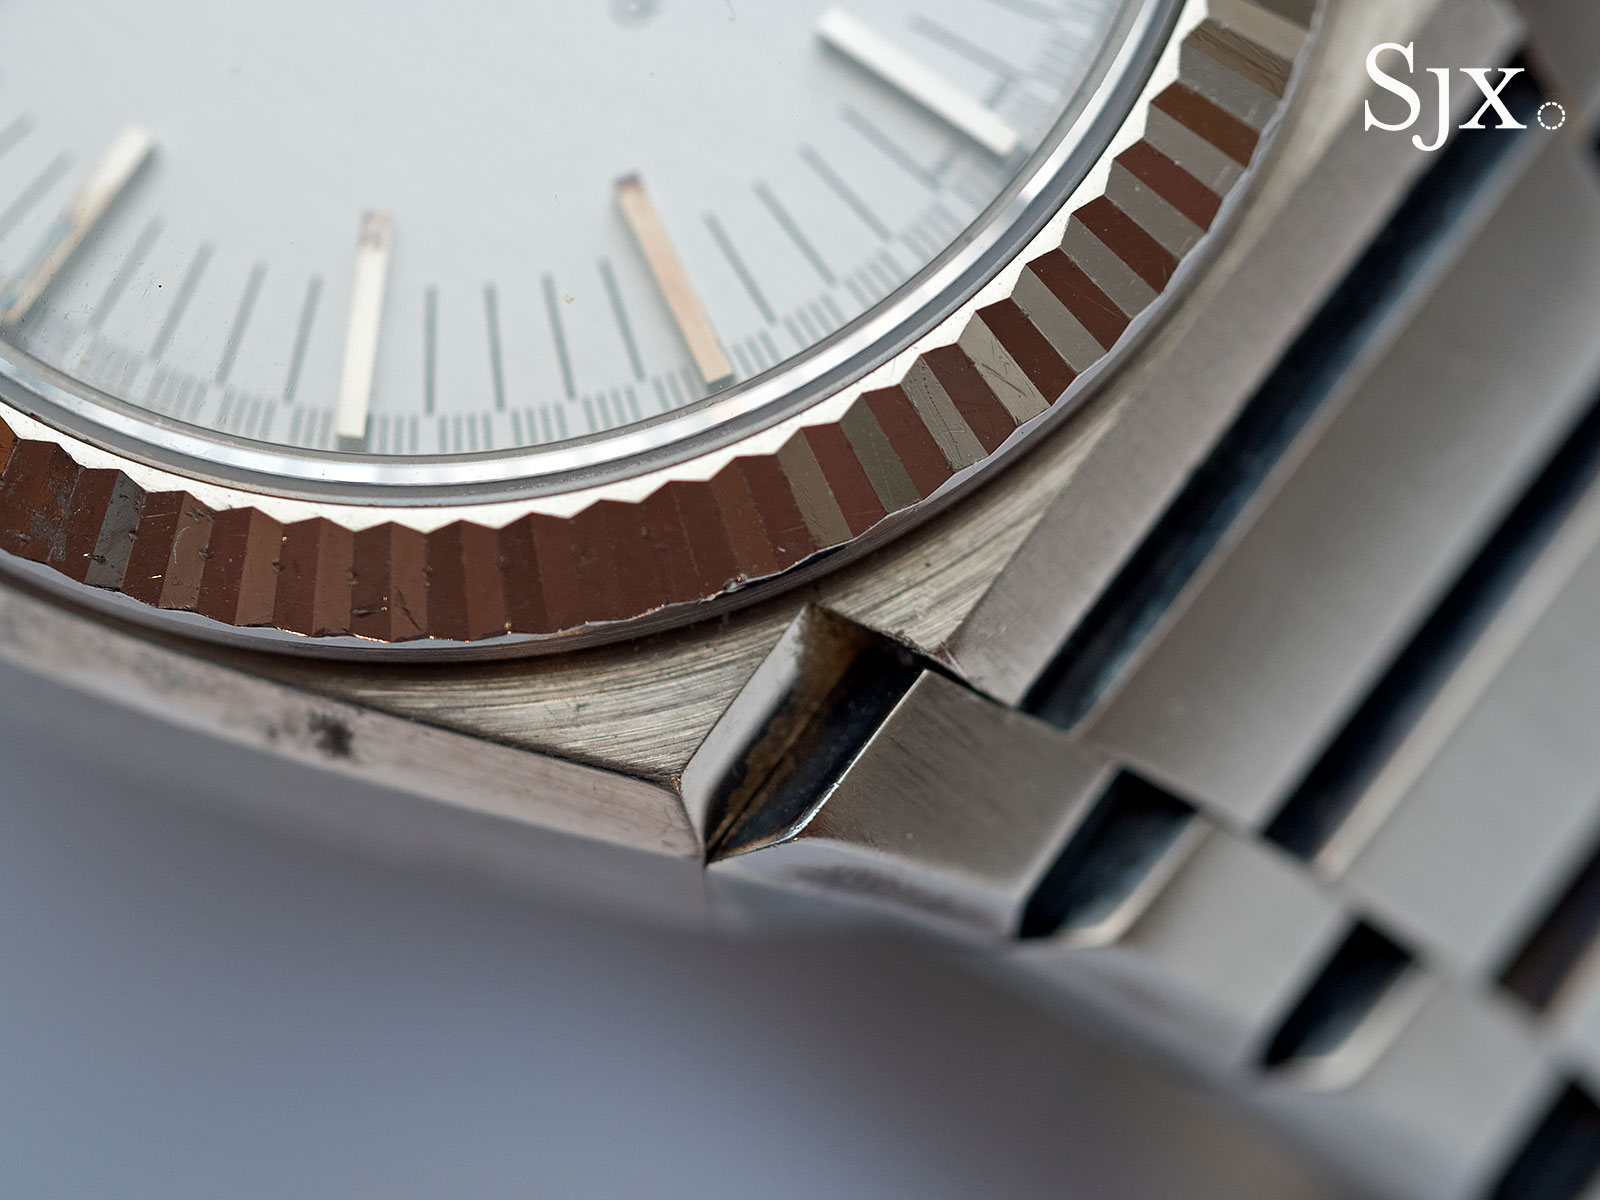 Rolex Beta 21 white gold 6